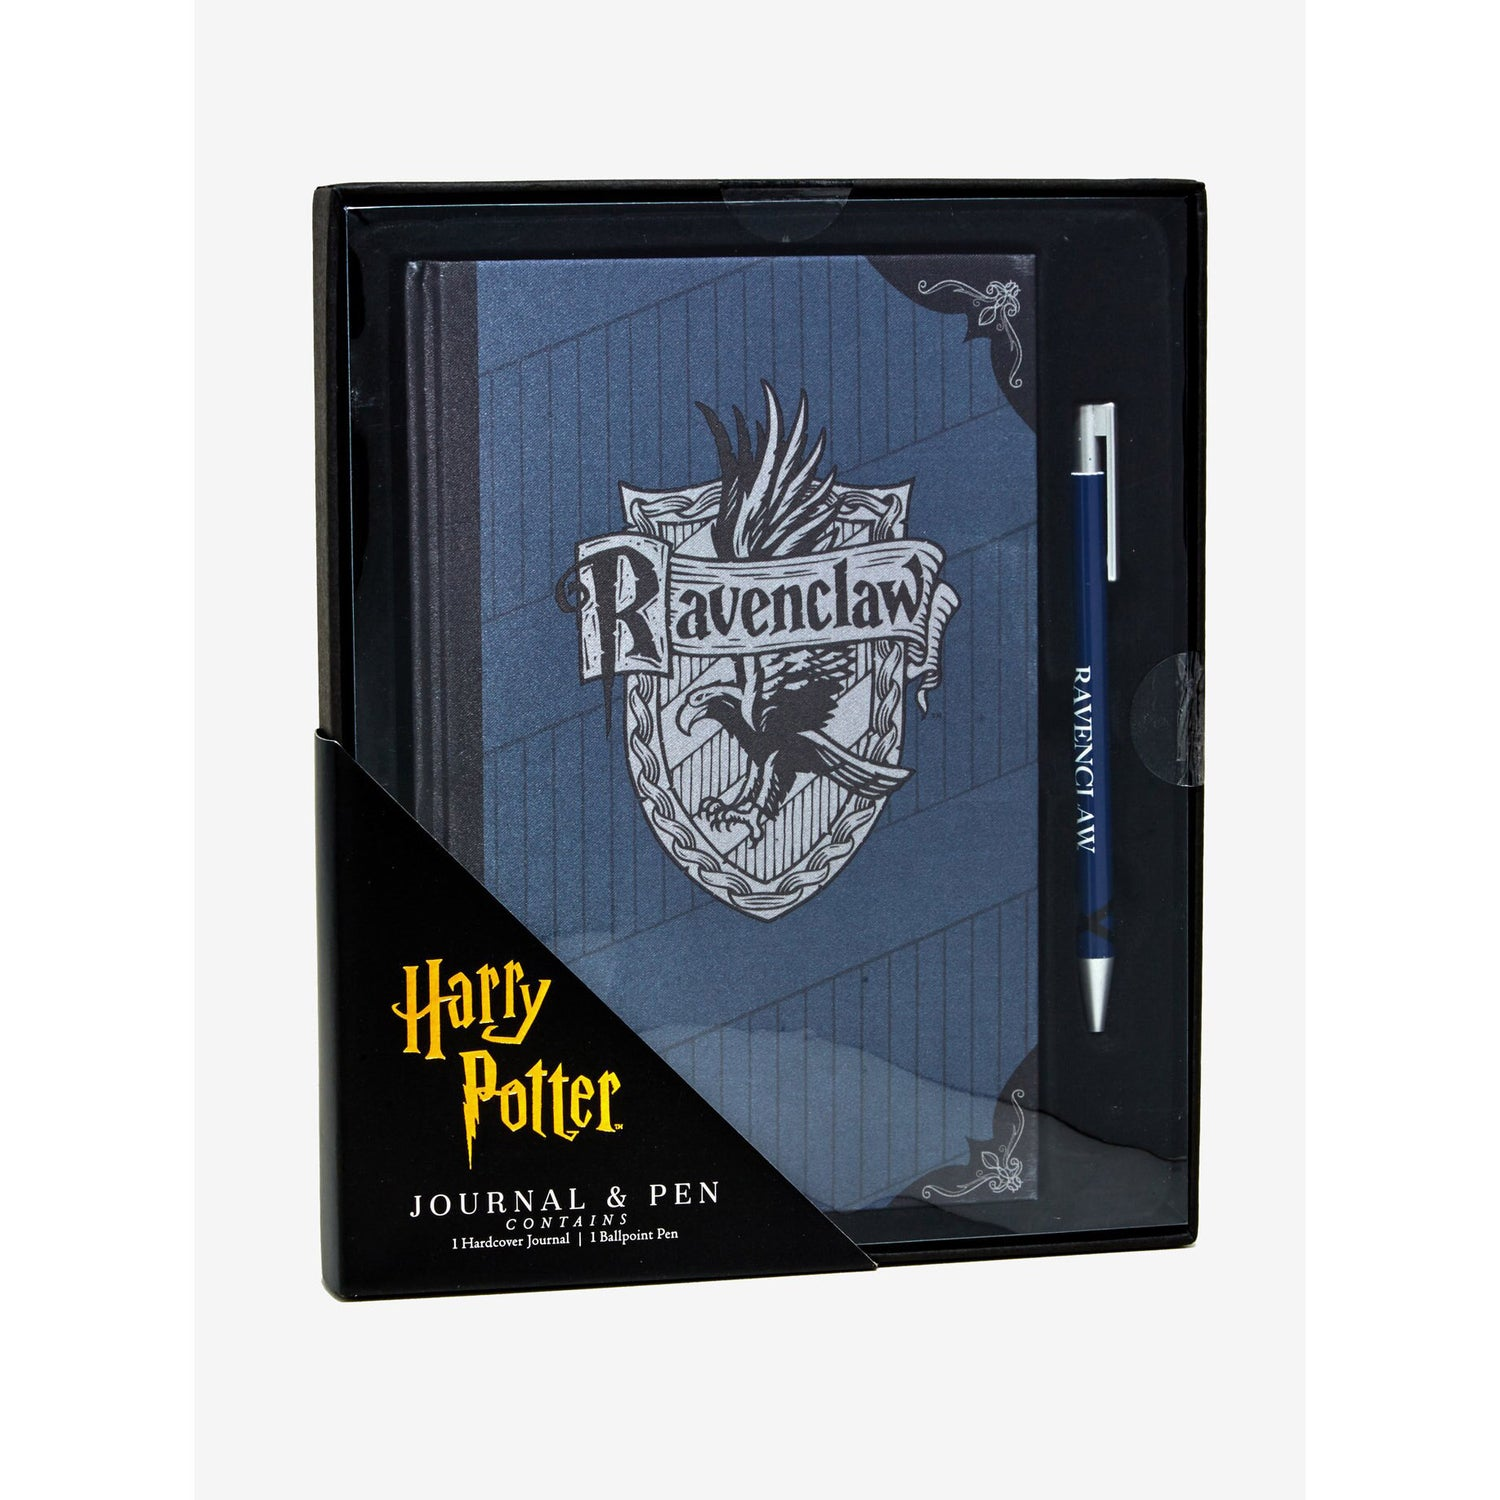 Harry Potter Ravenclaw Journal & Pen Set